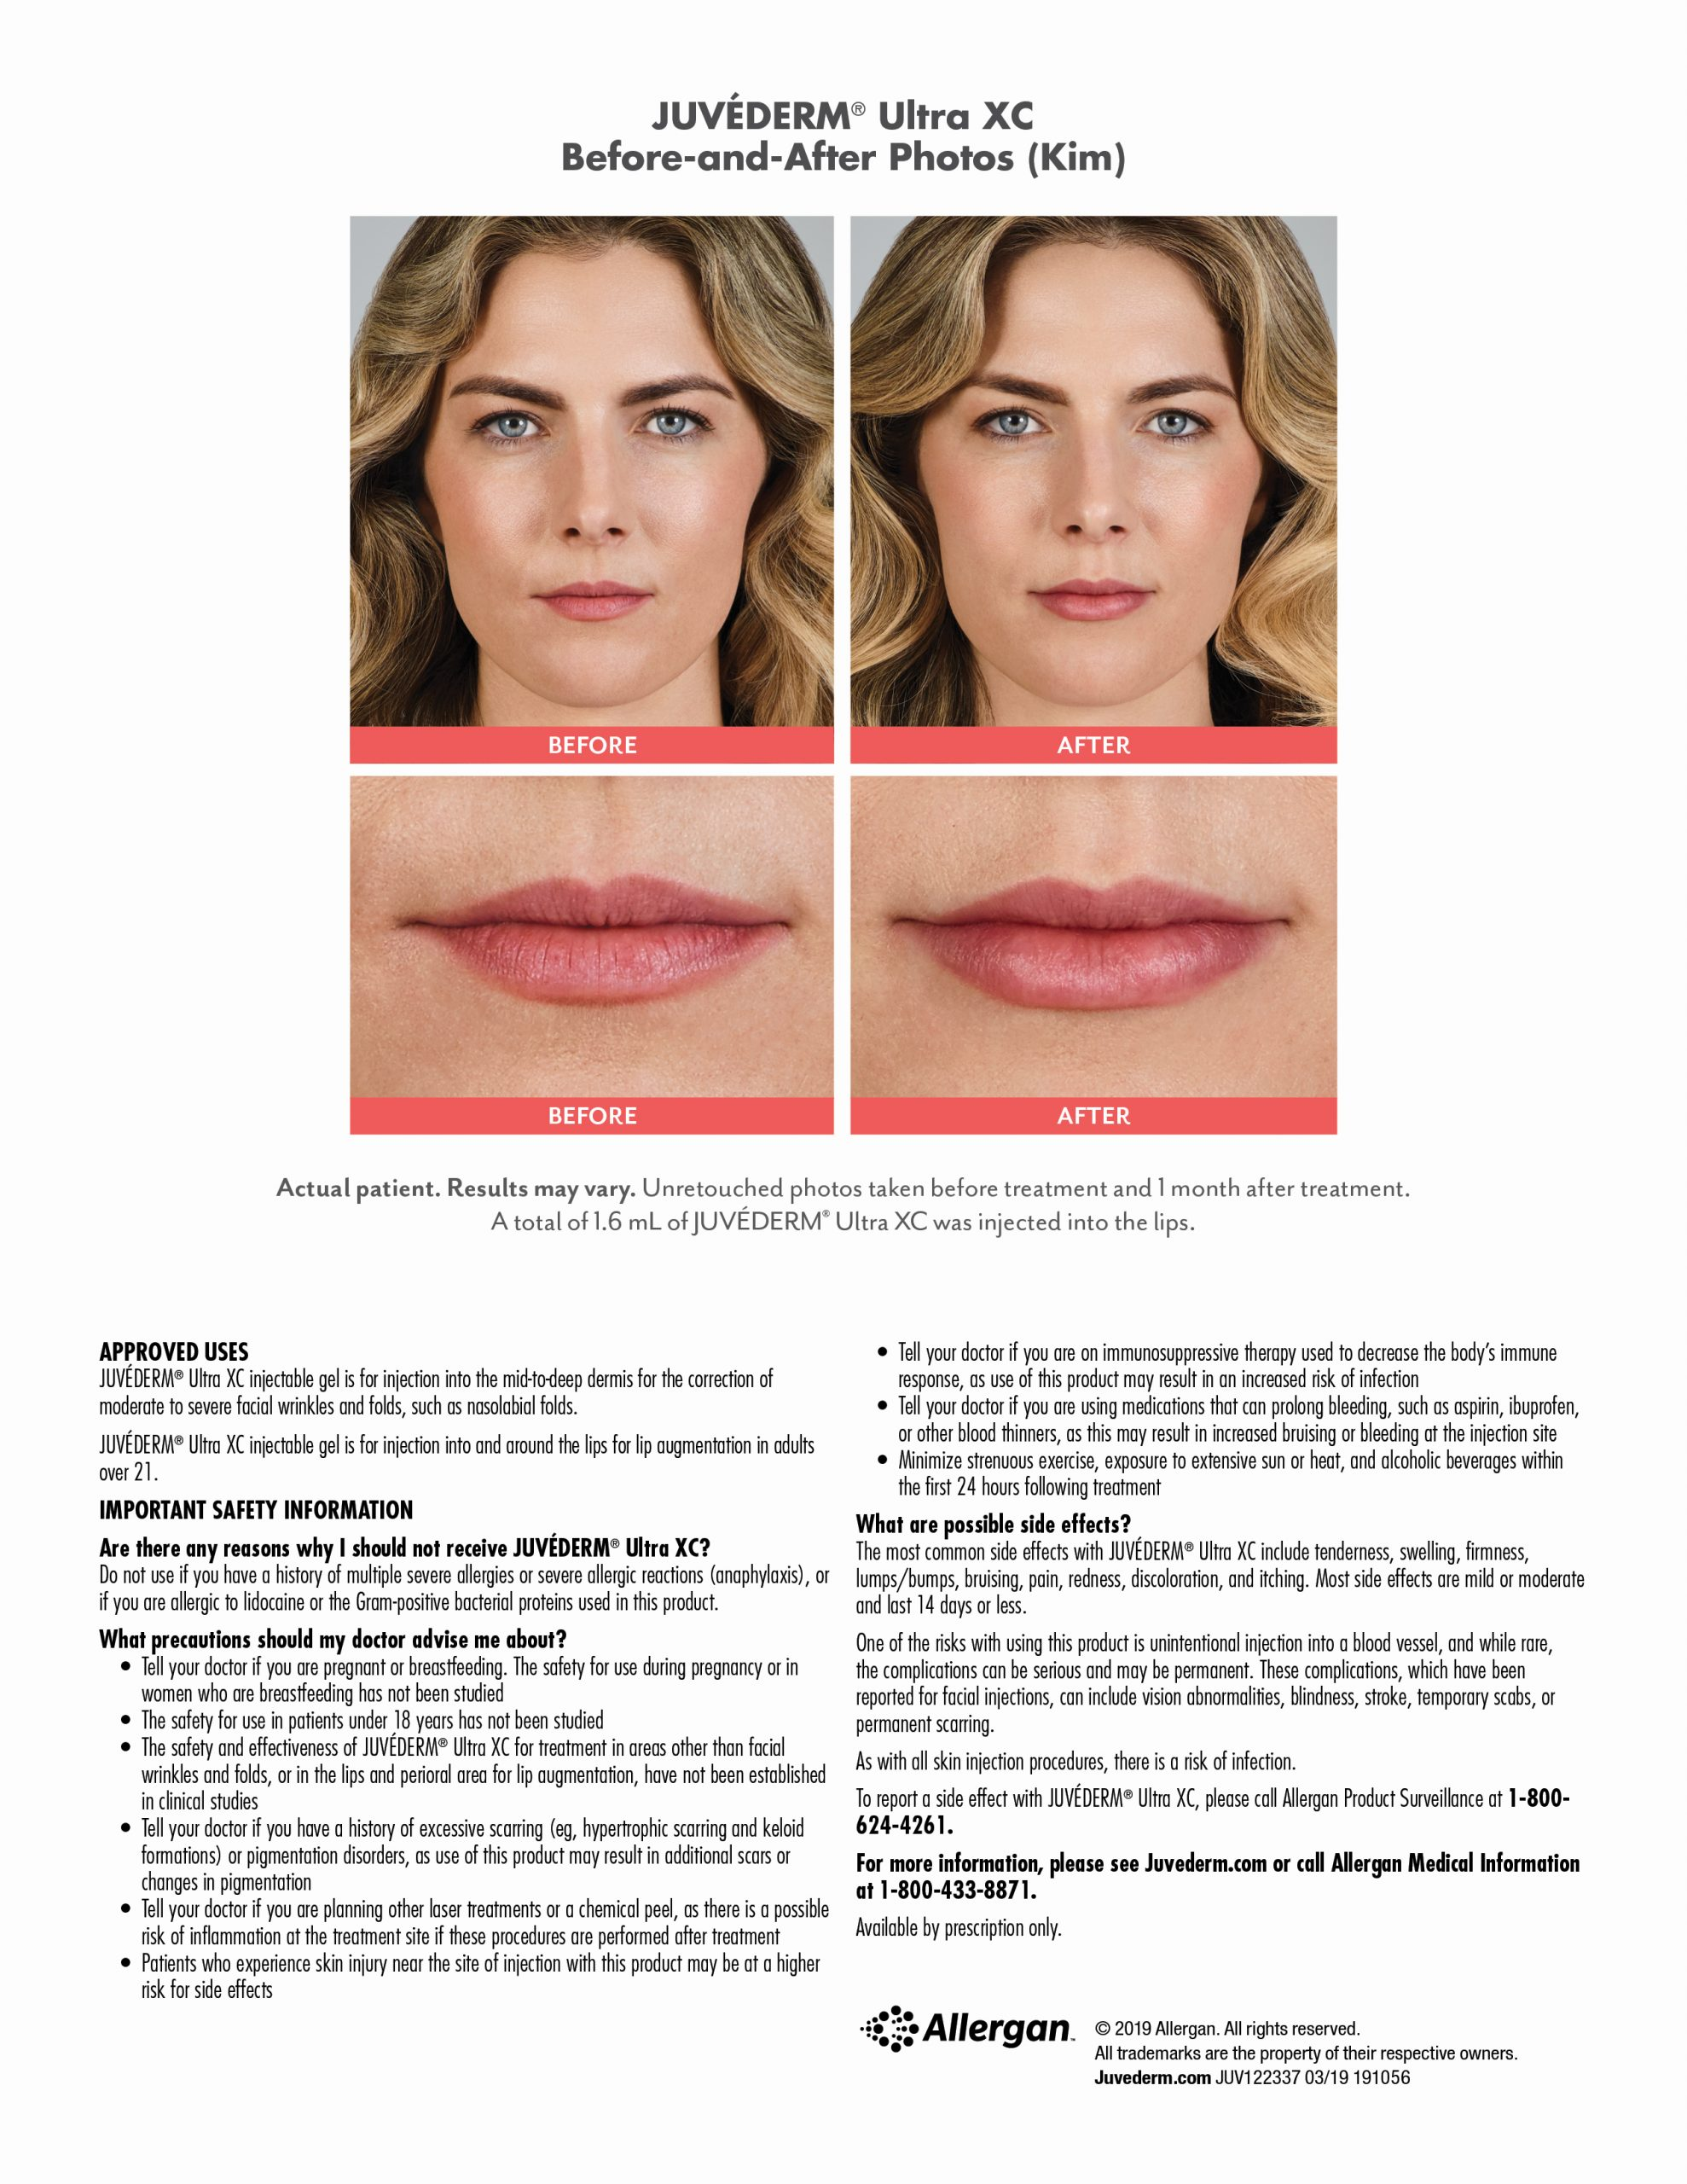 Juvederm Before & After-kim